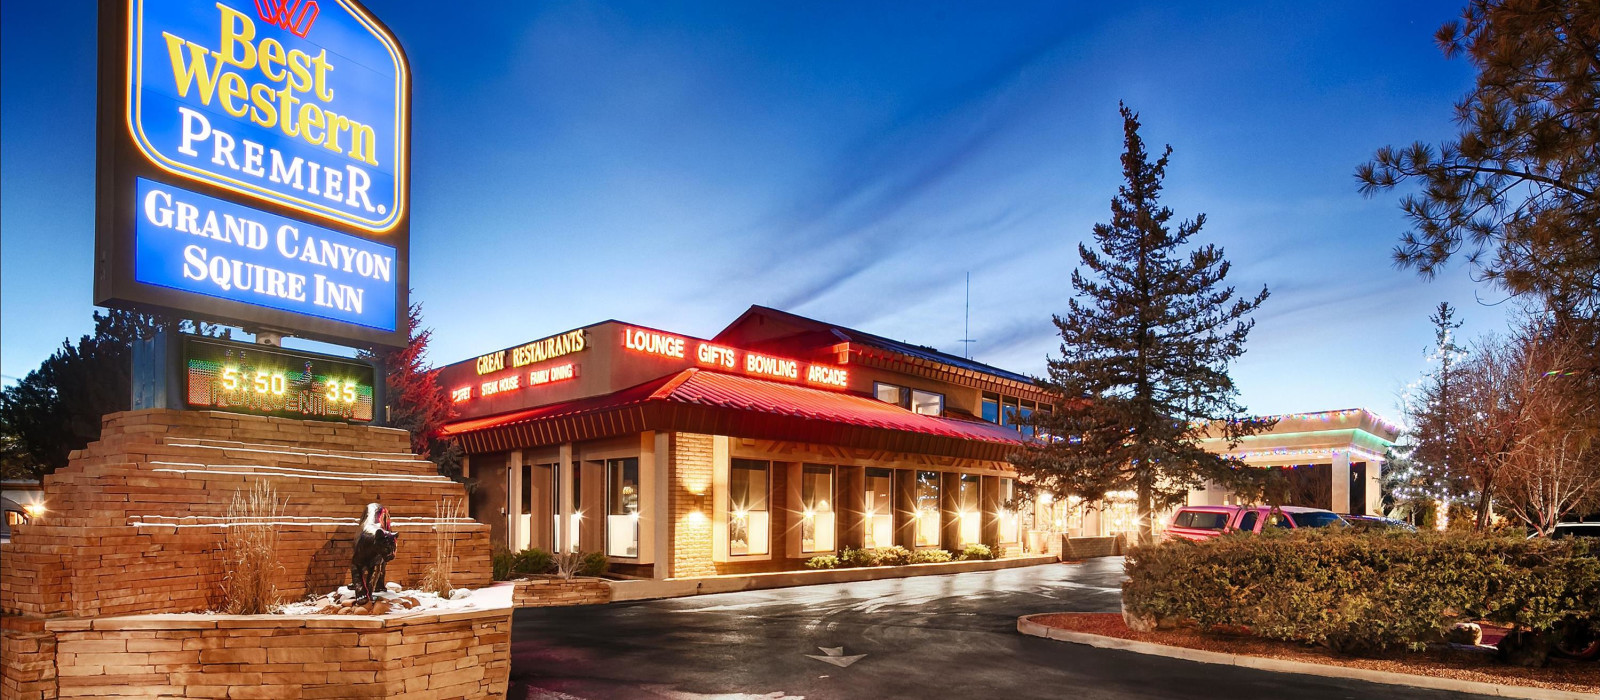 Hotel Best Western Premier Grand Canyon Squire Inn (Tusayan) USA